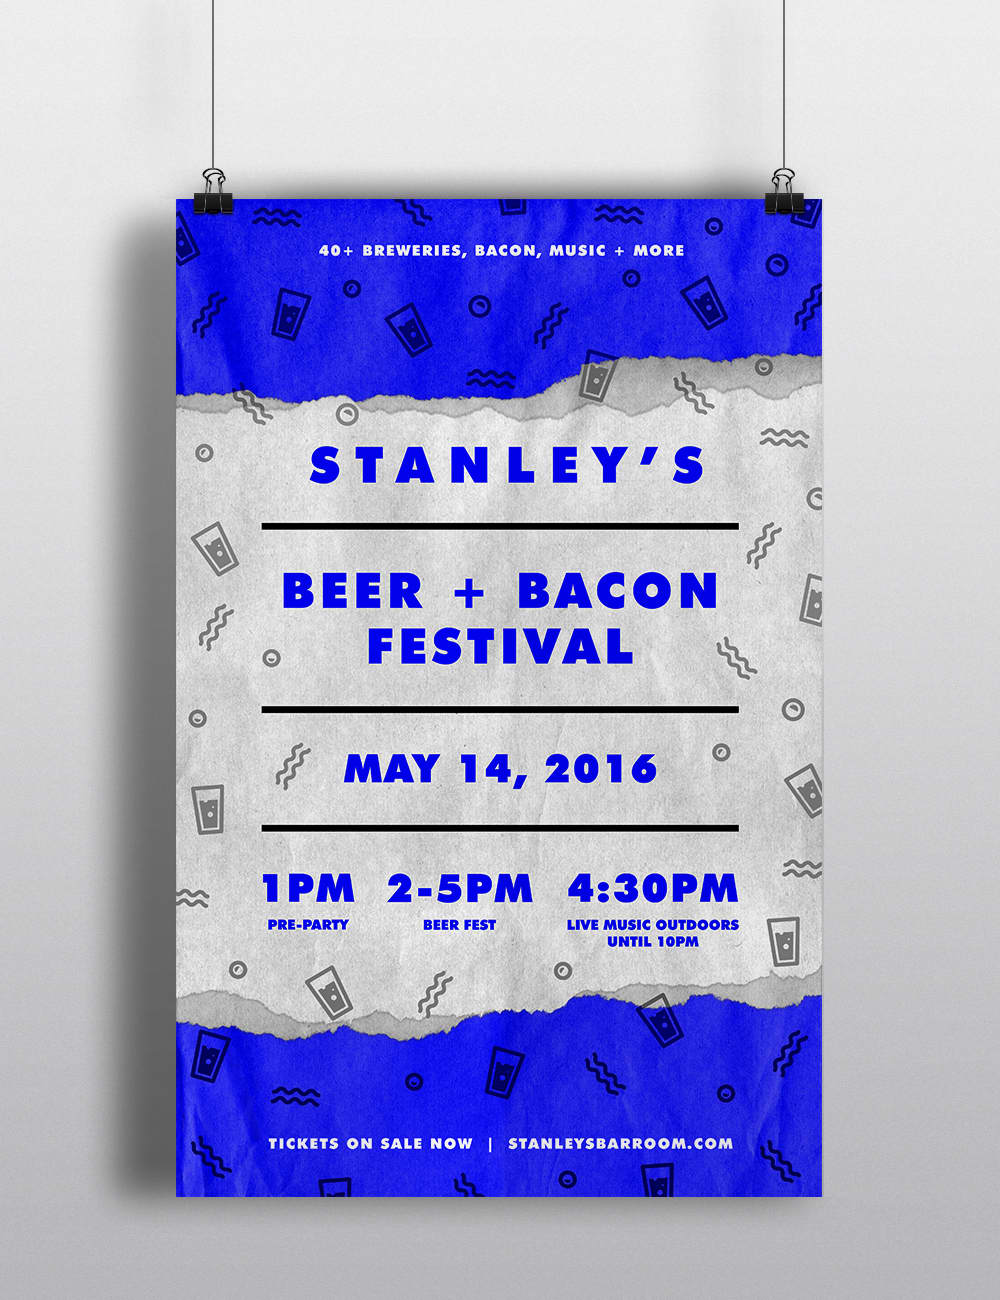 Stanley's Beer + Bacon Festival